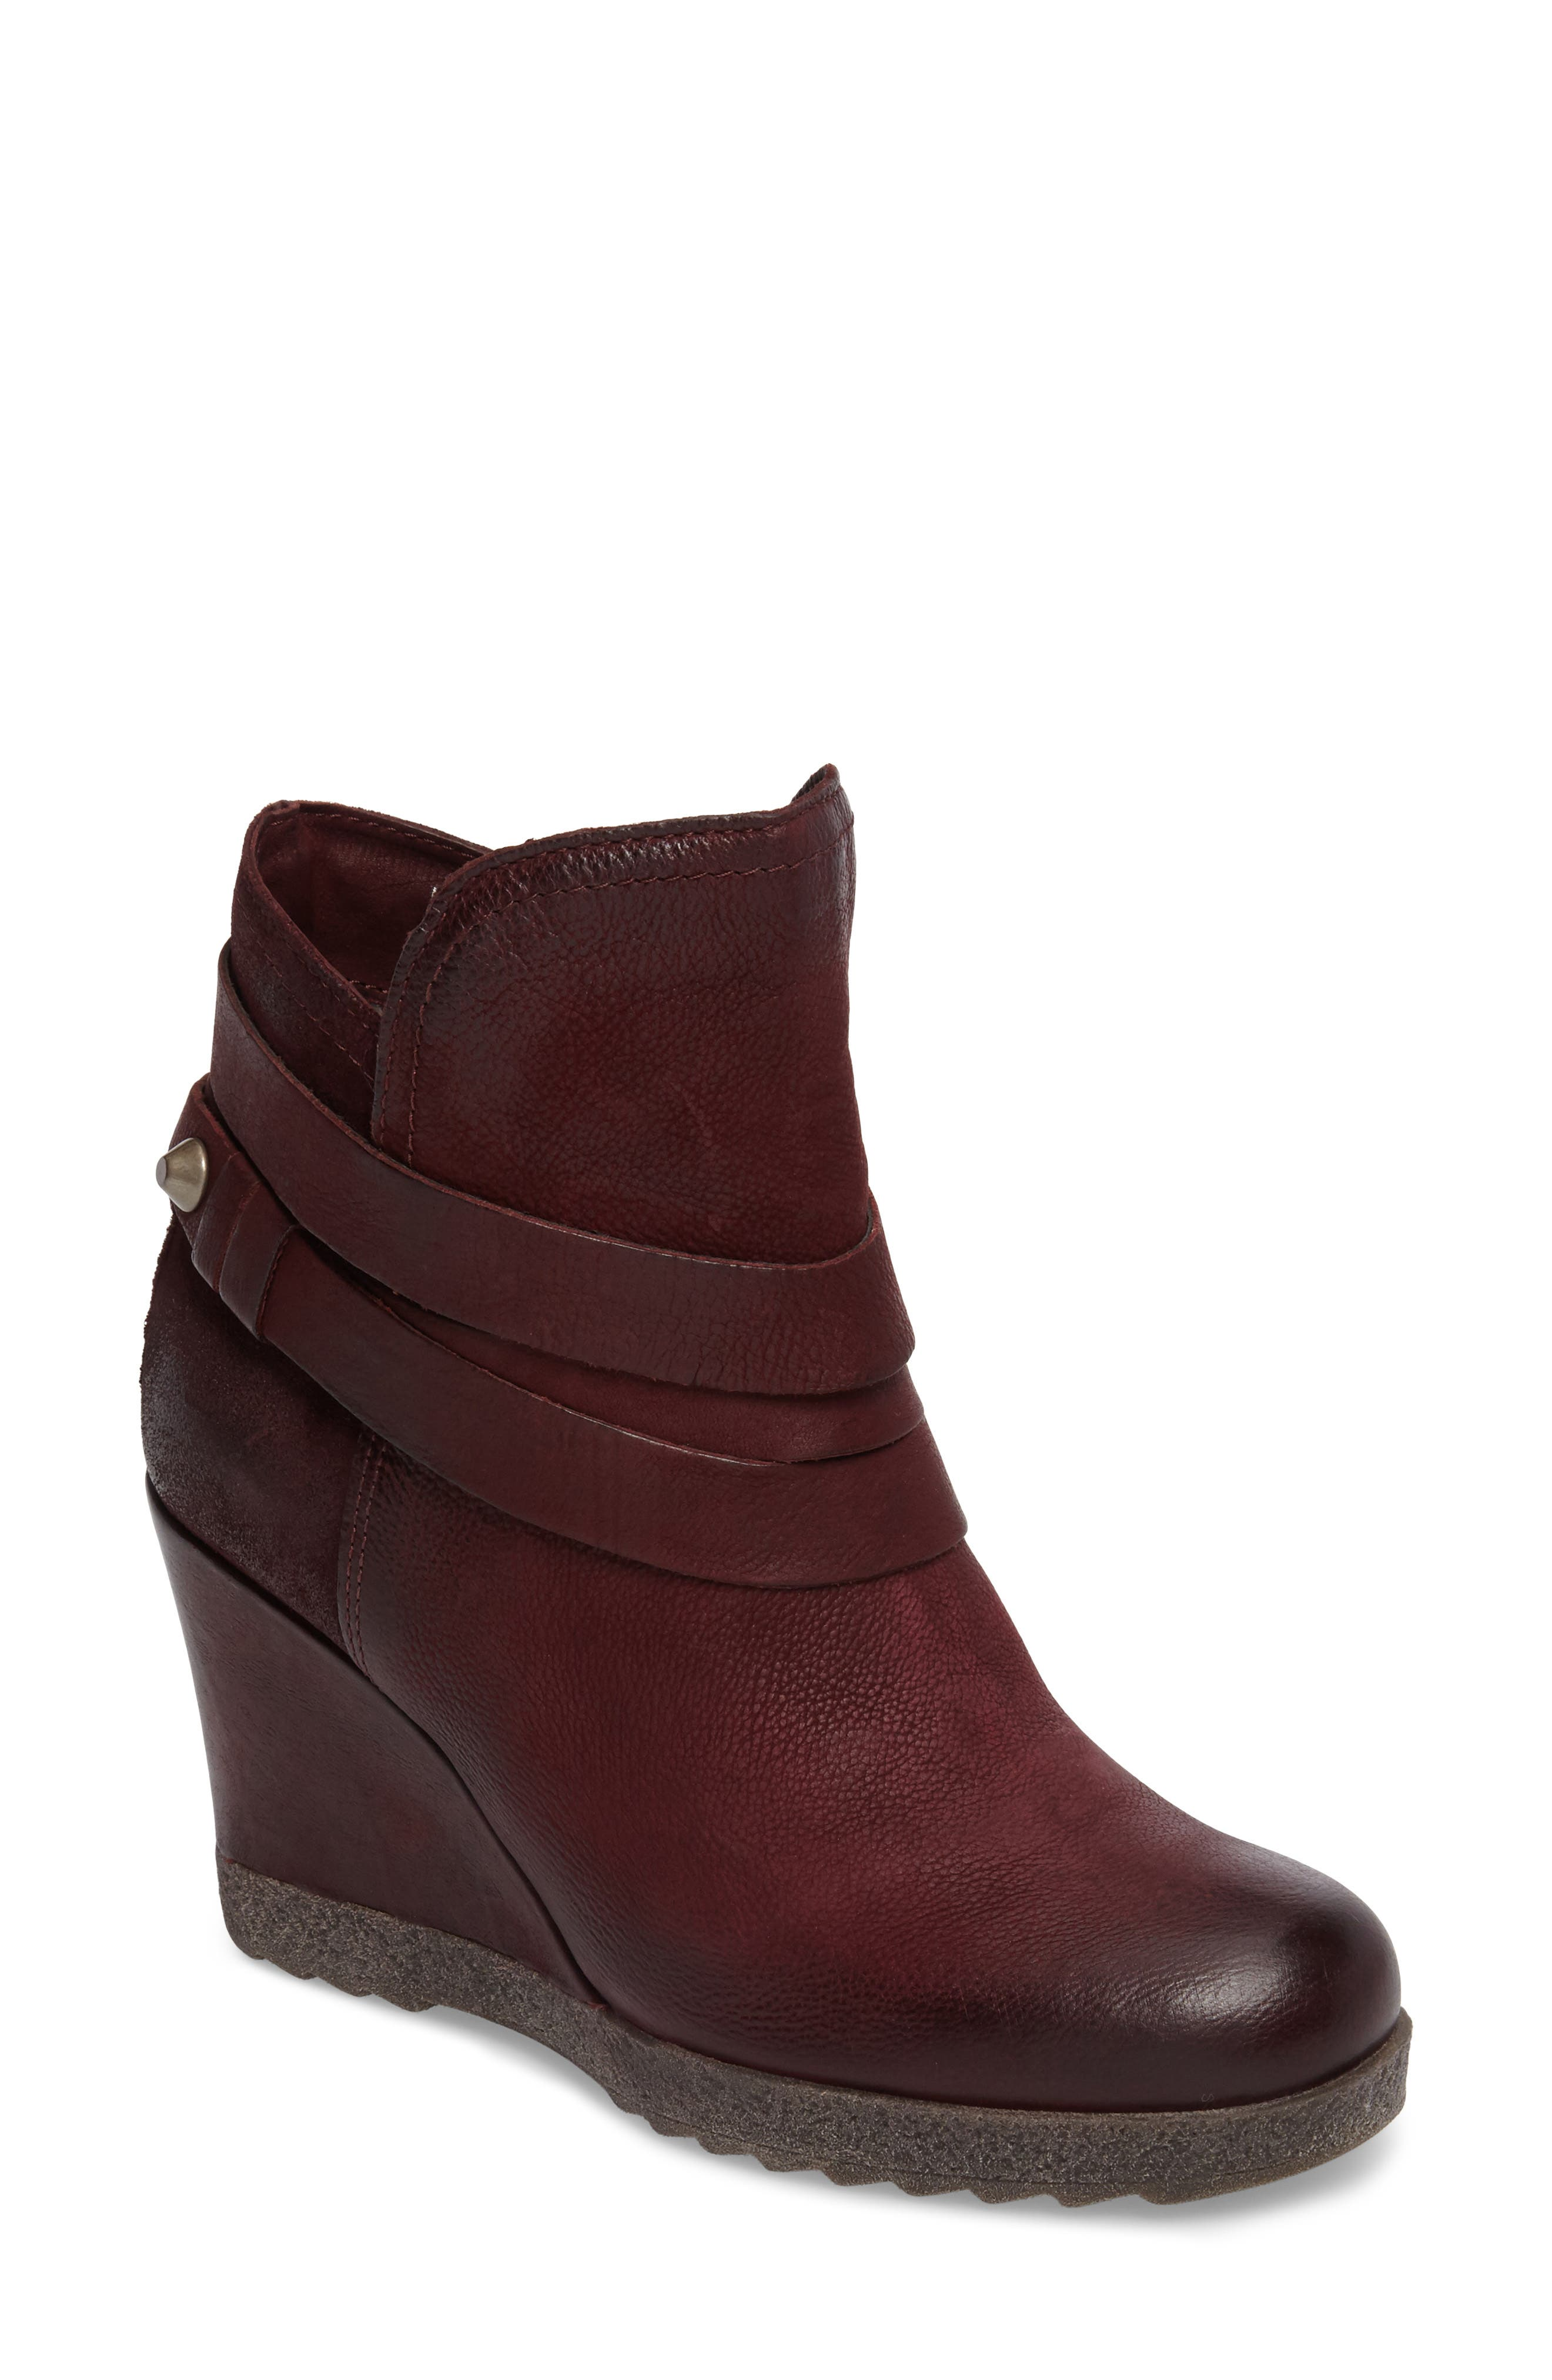 Alternate Image 1 Selected - Miz Mooz Narcissa Ankle Wrap Wedge Bootie (Women)